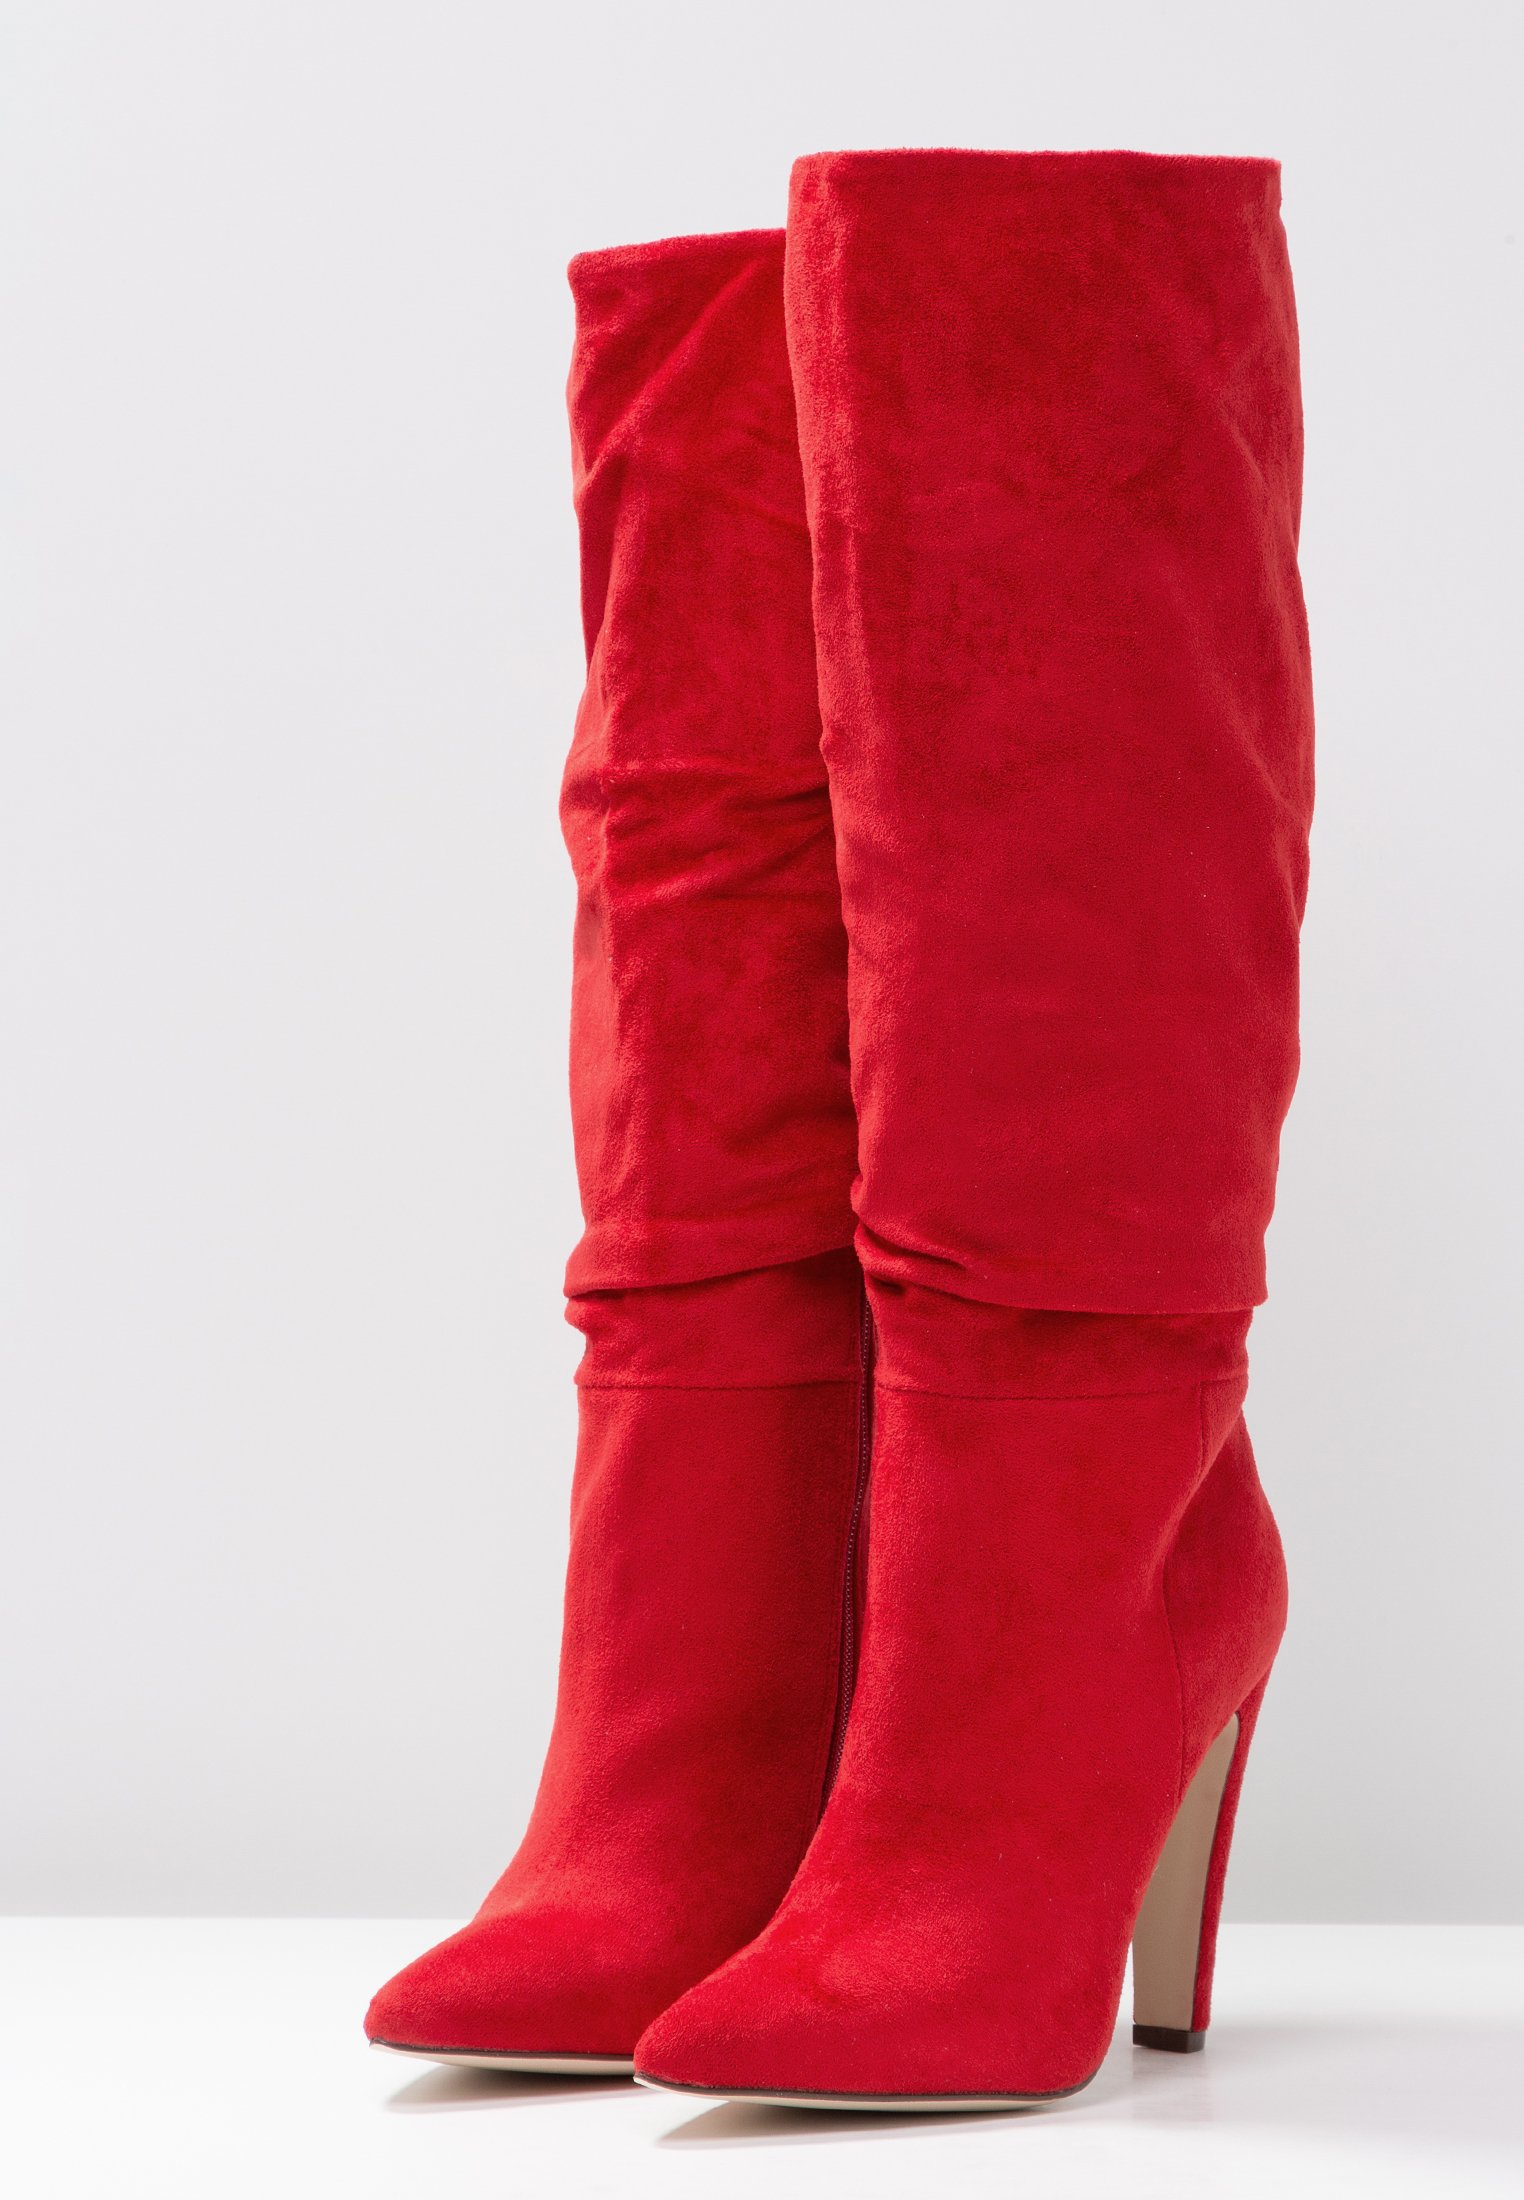 Call CapucciBottes Talons Spring Red It À Hauts 3A4LqRc5Sj